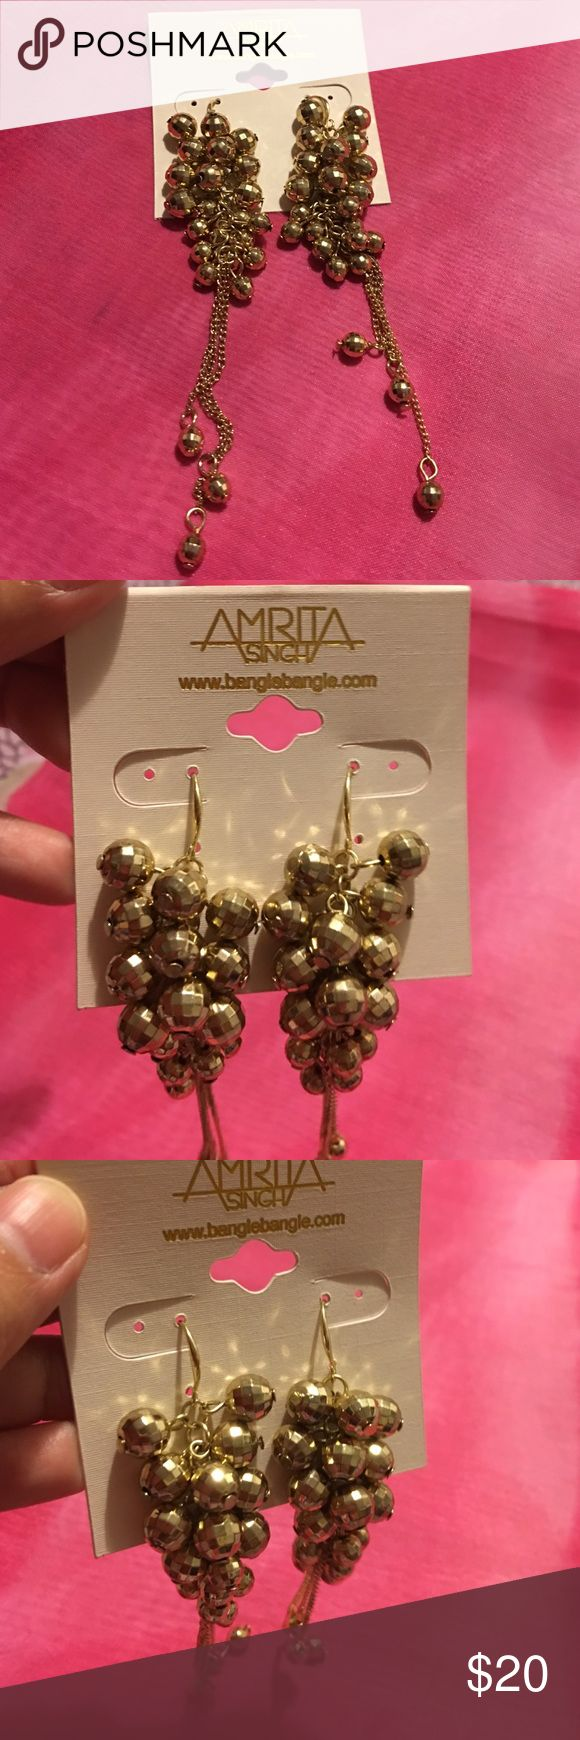 Amrita Singh earrings Charming Gold-tone Amrita Singh Earrings, perfect to wear for parties and special events, very nice quality Amrita Singh Jewelry Earrings